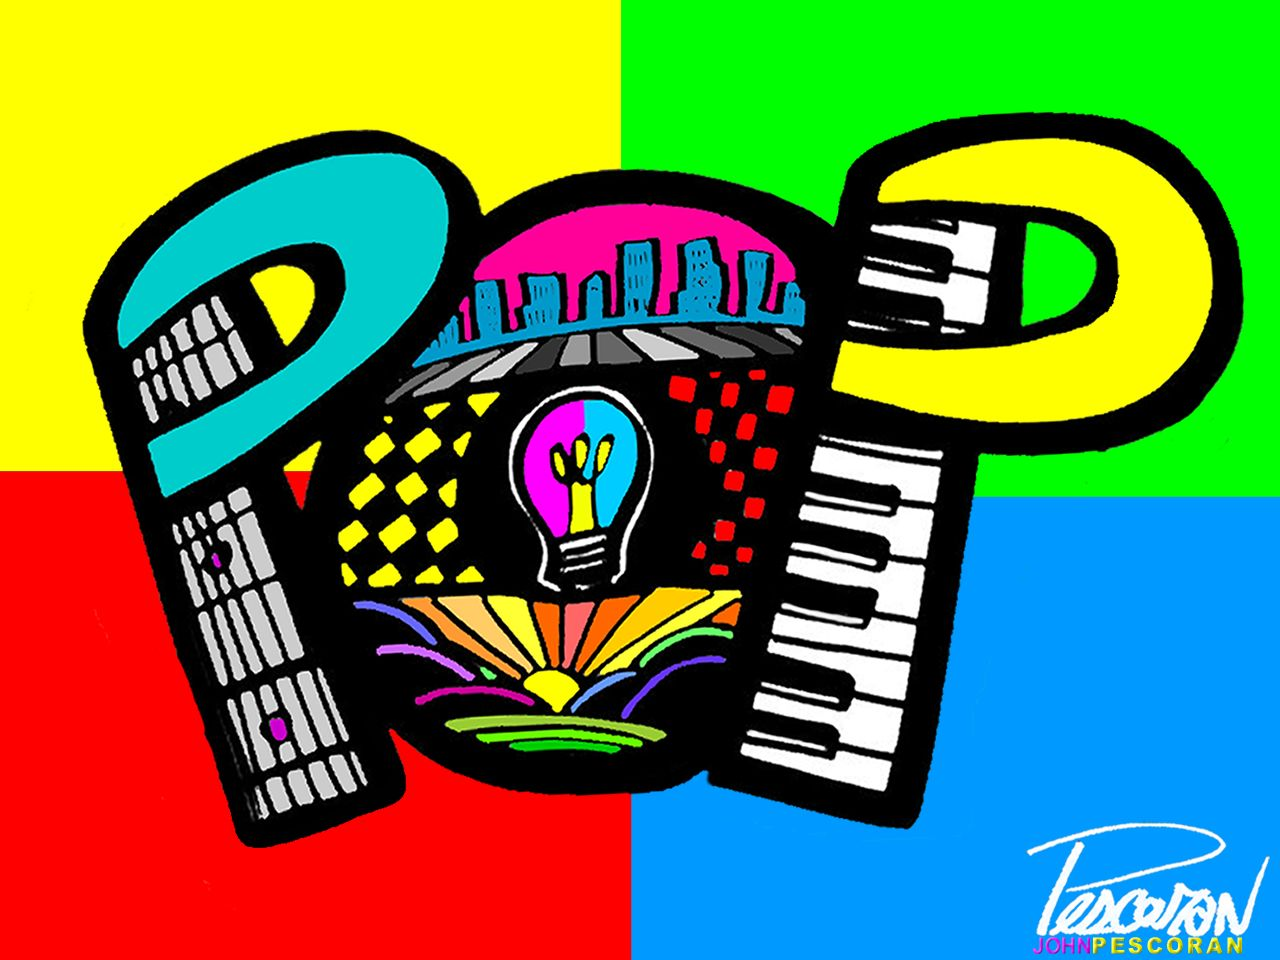 pop art music Art pop (also typeset as art-pop or artpop) is a loosely defined style of pop music influenced by pop art's integration of high and low culture, and which emphasizes the manipulation of signs, style, and gesture over personal expression.